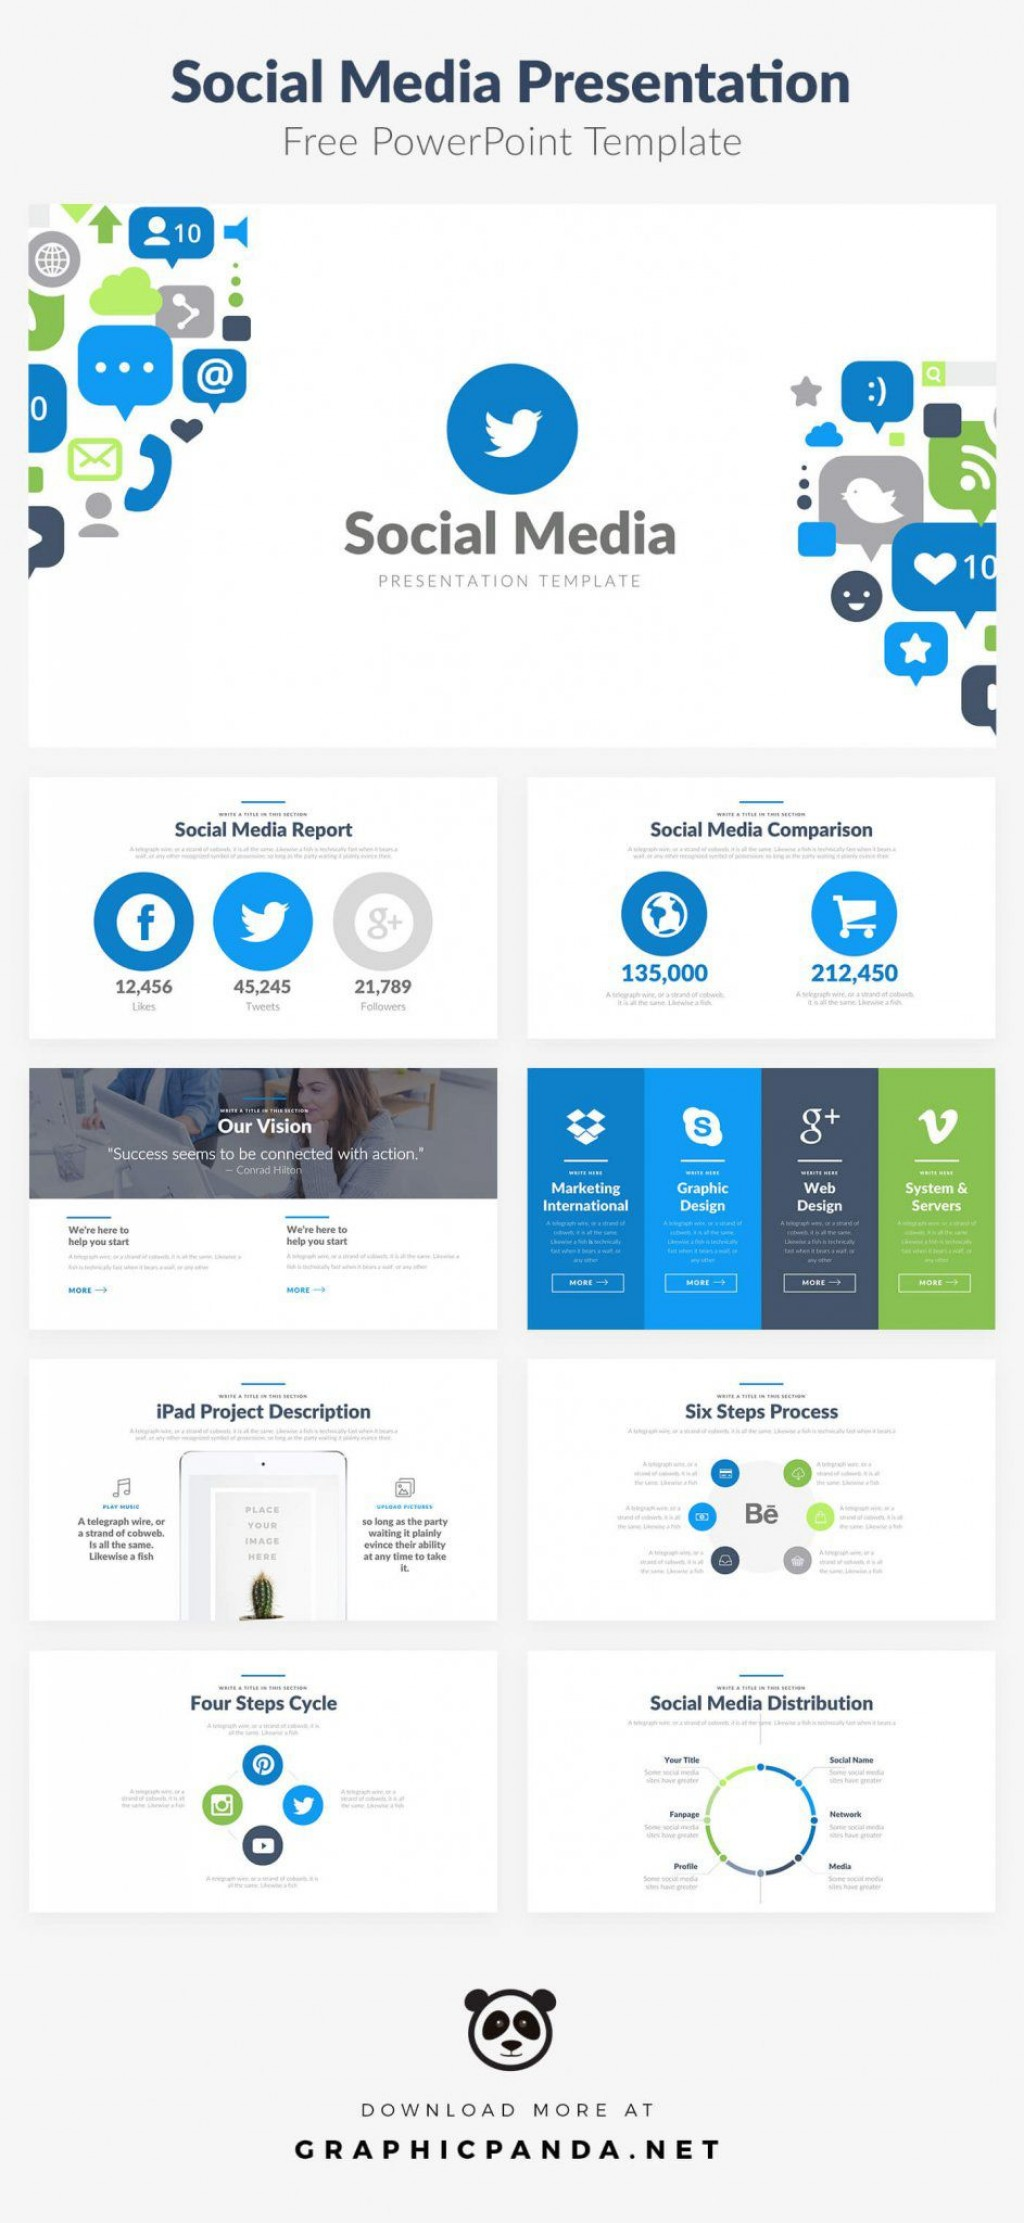 004 Unusual Social Media Powerpoint Template Free Inspiration  Strategy Trend 2017 - ReportLarge